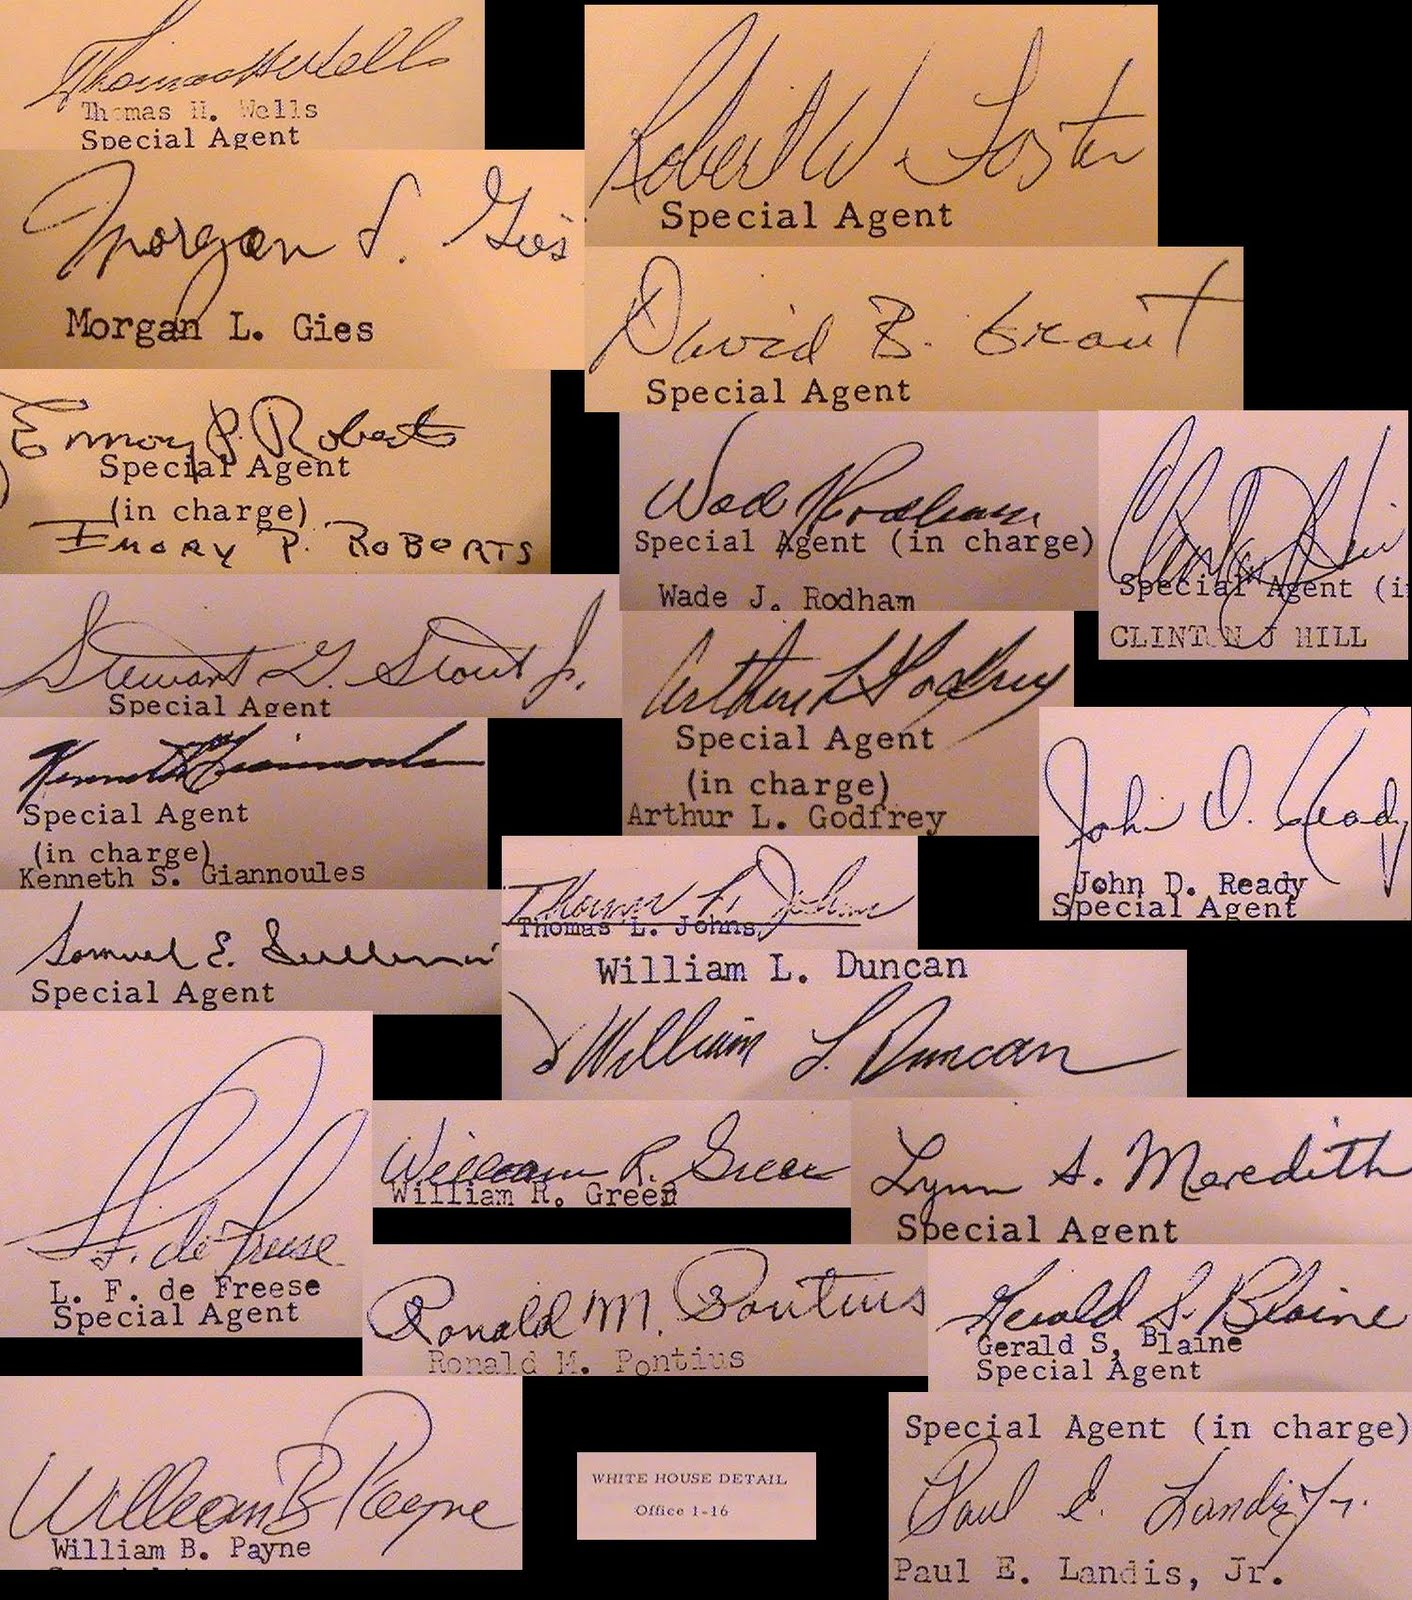 Various Kennedy Detail agent signatures